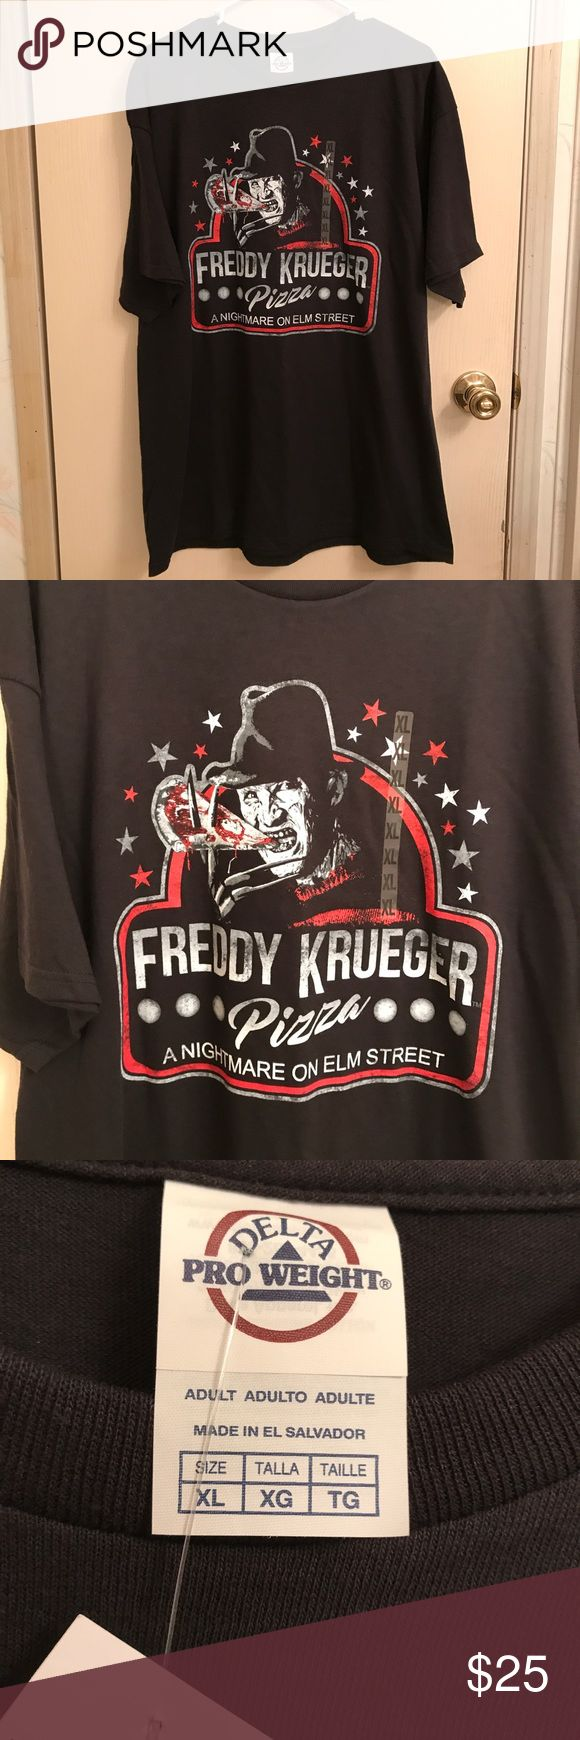 🆕 (XL) Freddy Krueger Pizza T-Shirt *Brand: Delta *Color: Black *Condition: New with tags *Size: XL *Material: 100% preshrunk cotton *Chest Size: Approximately 45 inches. *Length: Approximately 30 inches long.  ♥ I am from a smoke free home.  ♥ I have cats and a dog. I always make sure my clothing is fur free, but sometimes there could be a stray hair or two left. Delta Shirts Tees - Short Sleeve